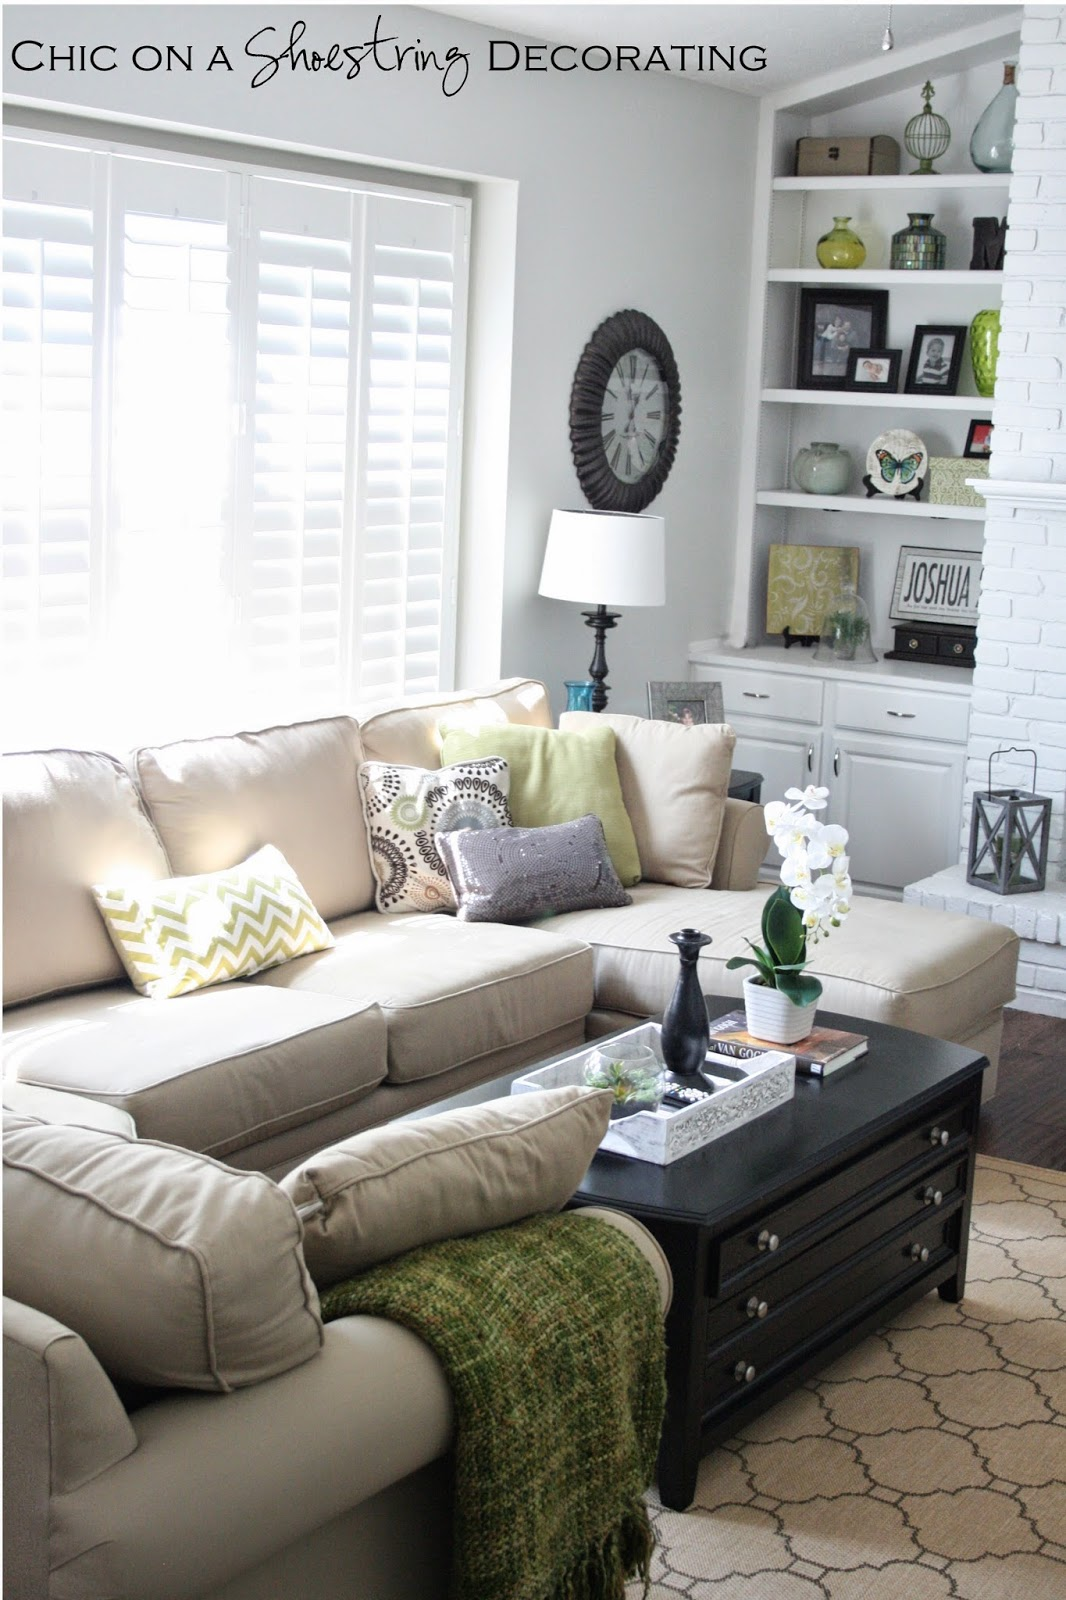 chic on a shoestring decorating client living room